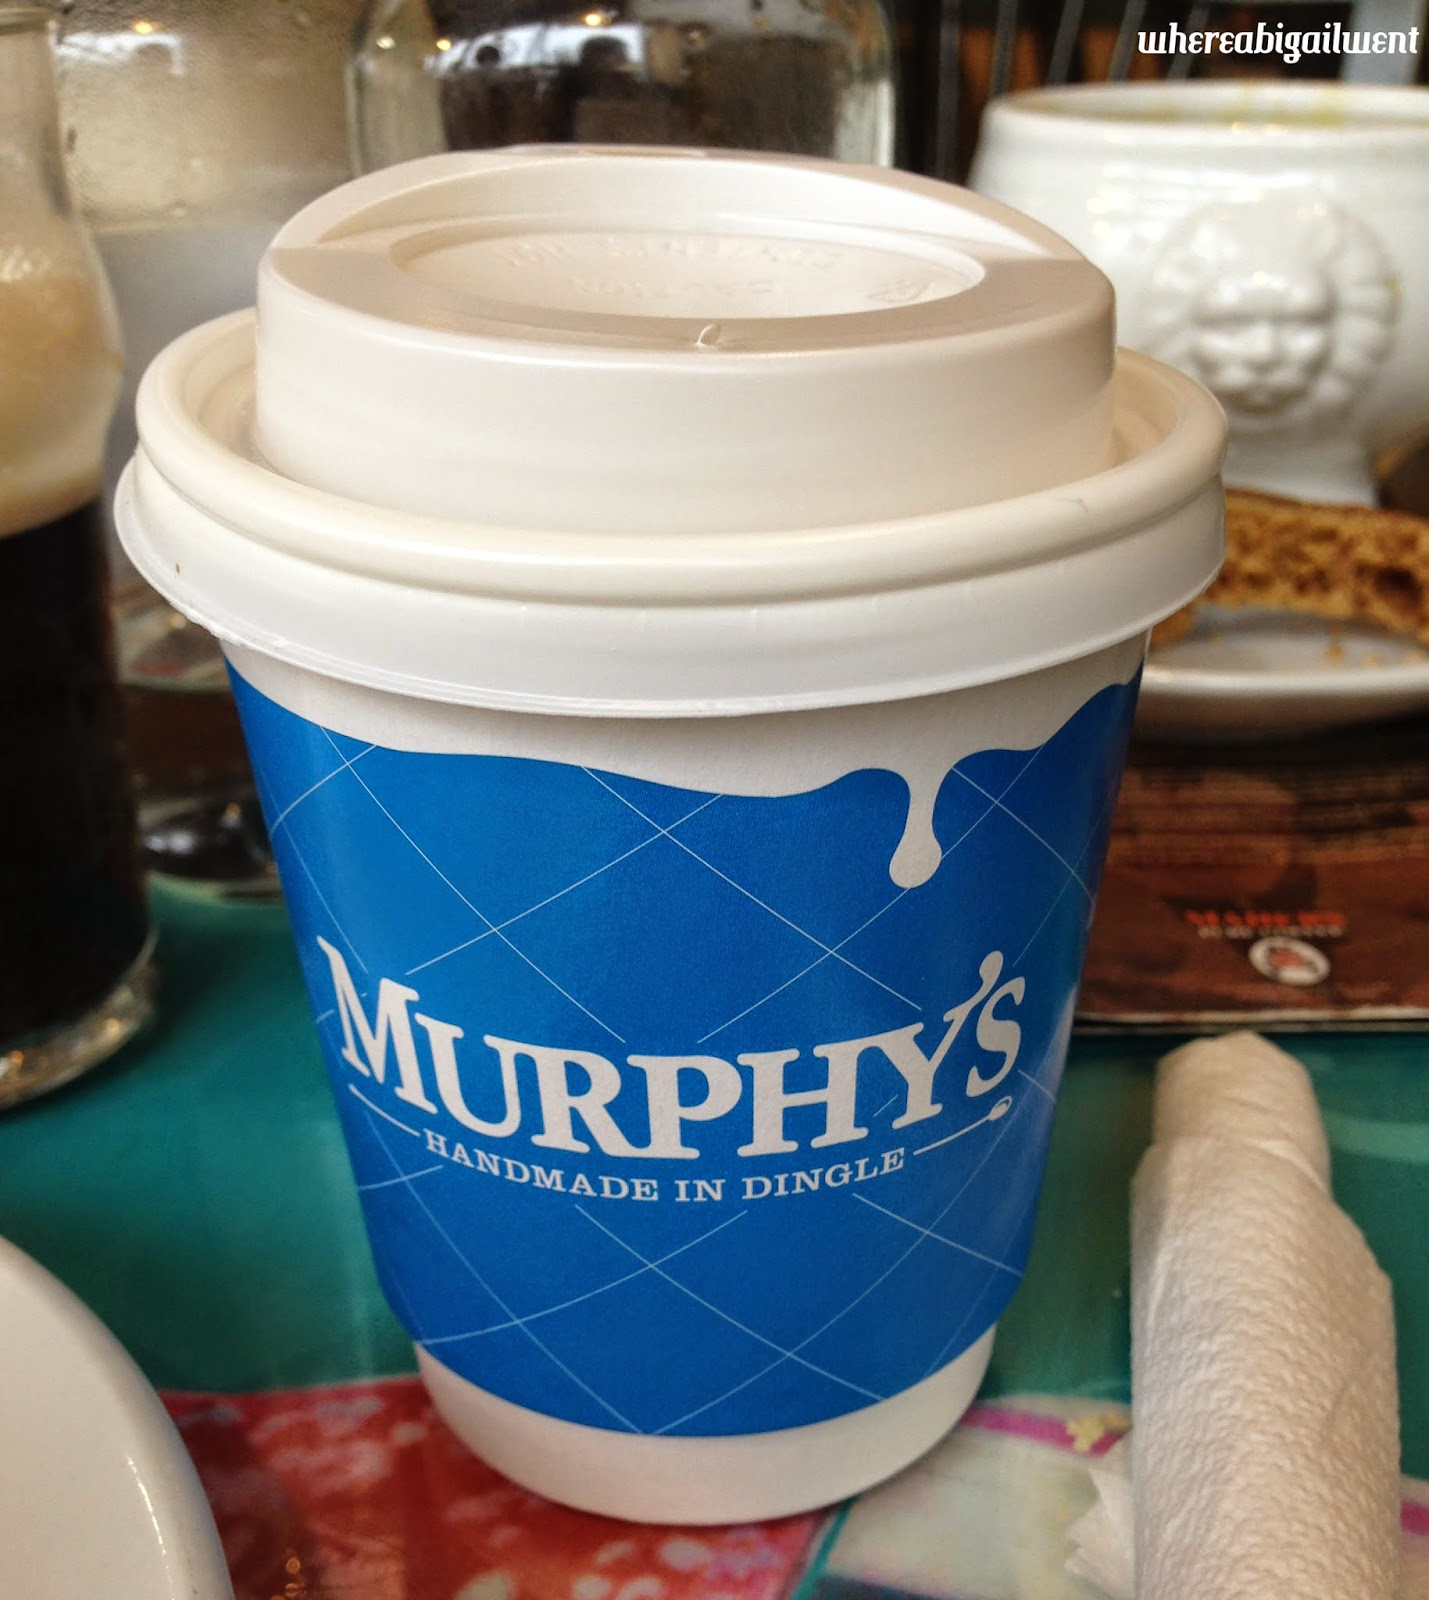 Murphy's Ice Cream Handmade in Dingle